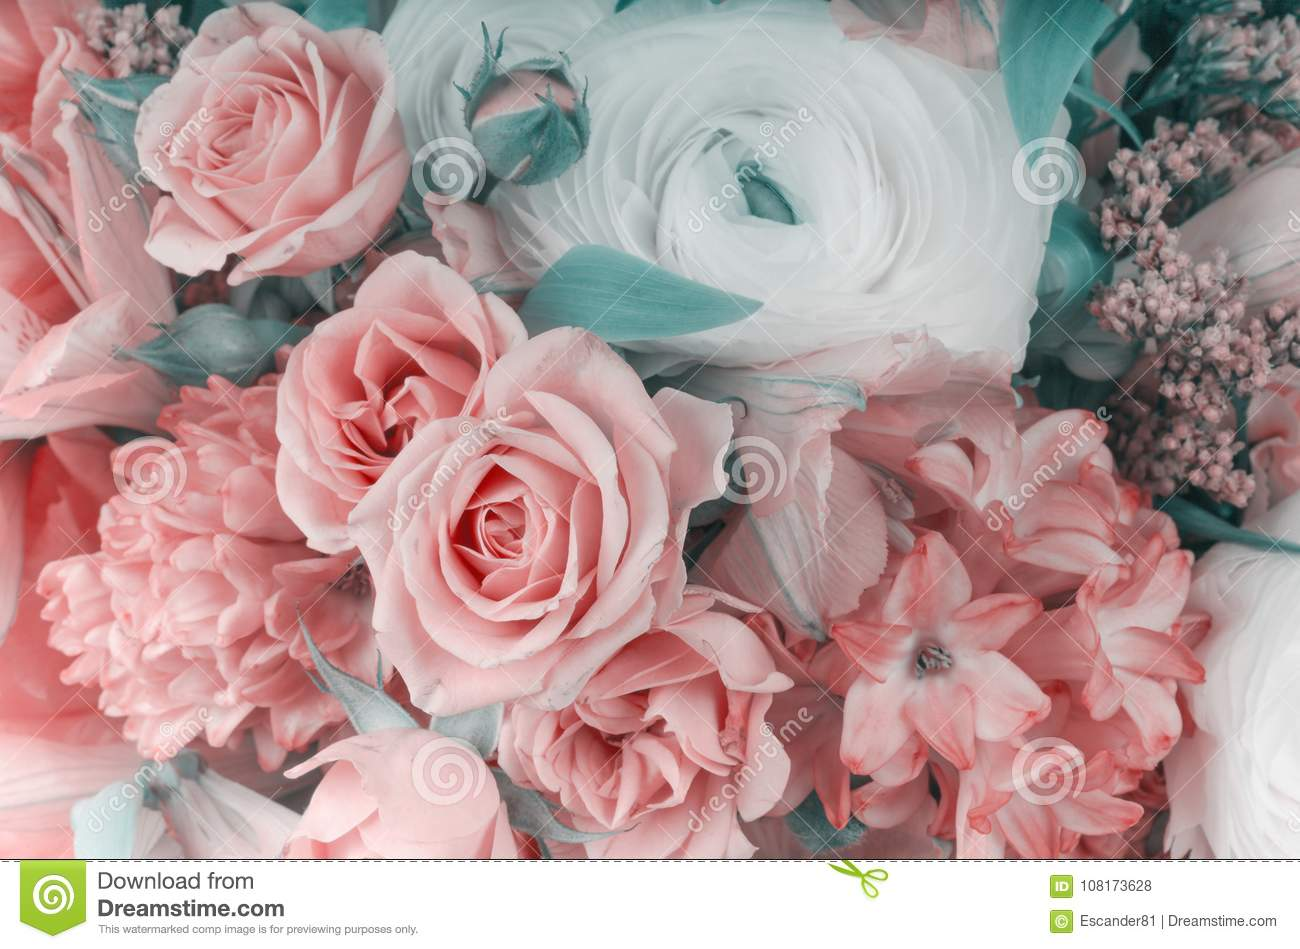 Amazing flower bouquet arrangement close up stock photo image of amazing flower bouquet arrangement close up izmirmasajfo